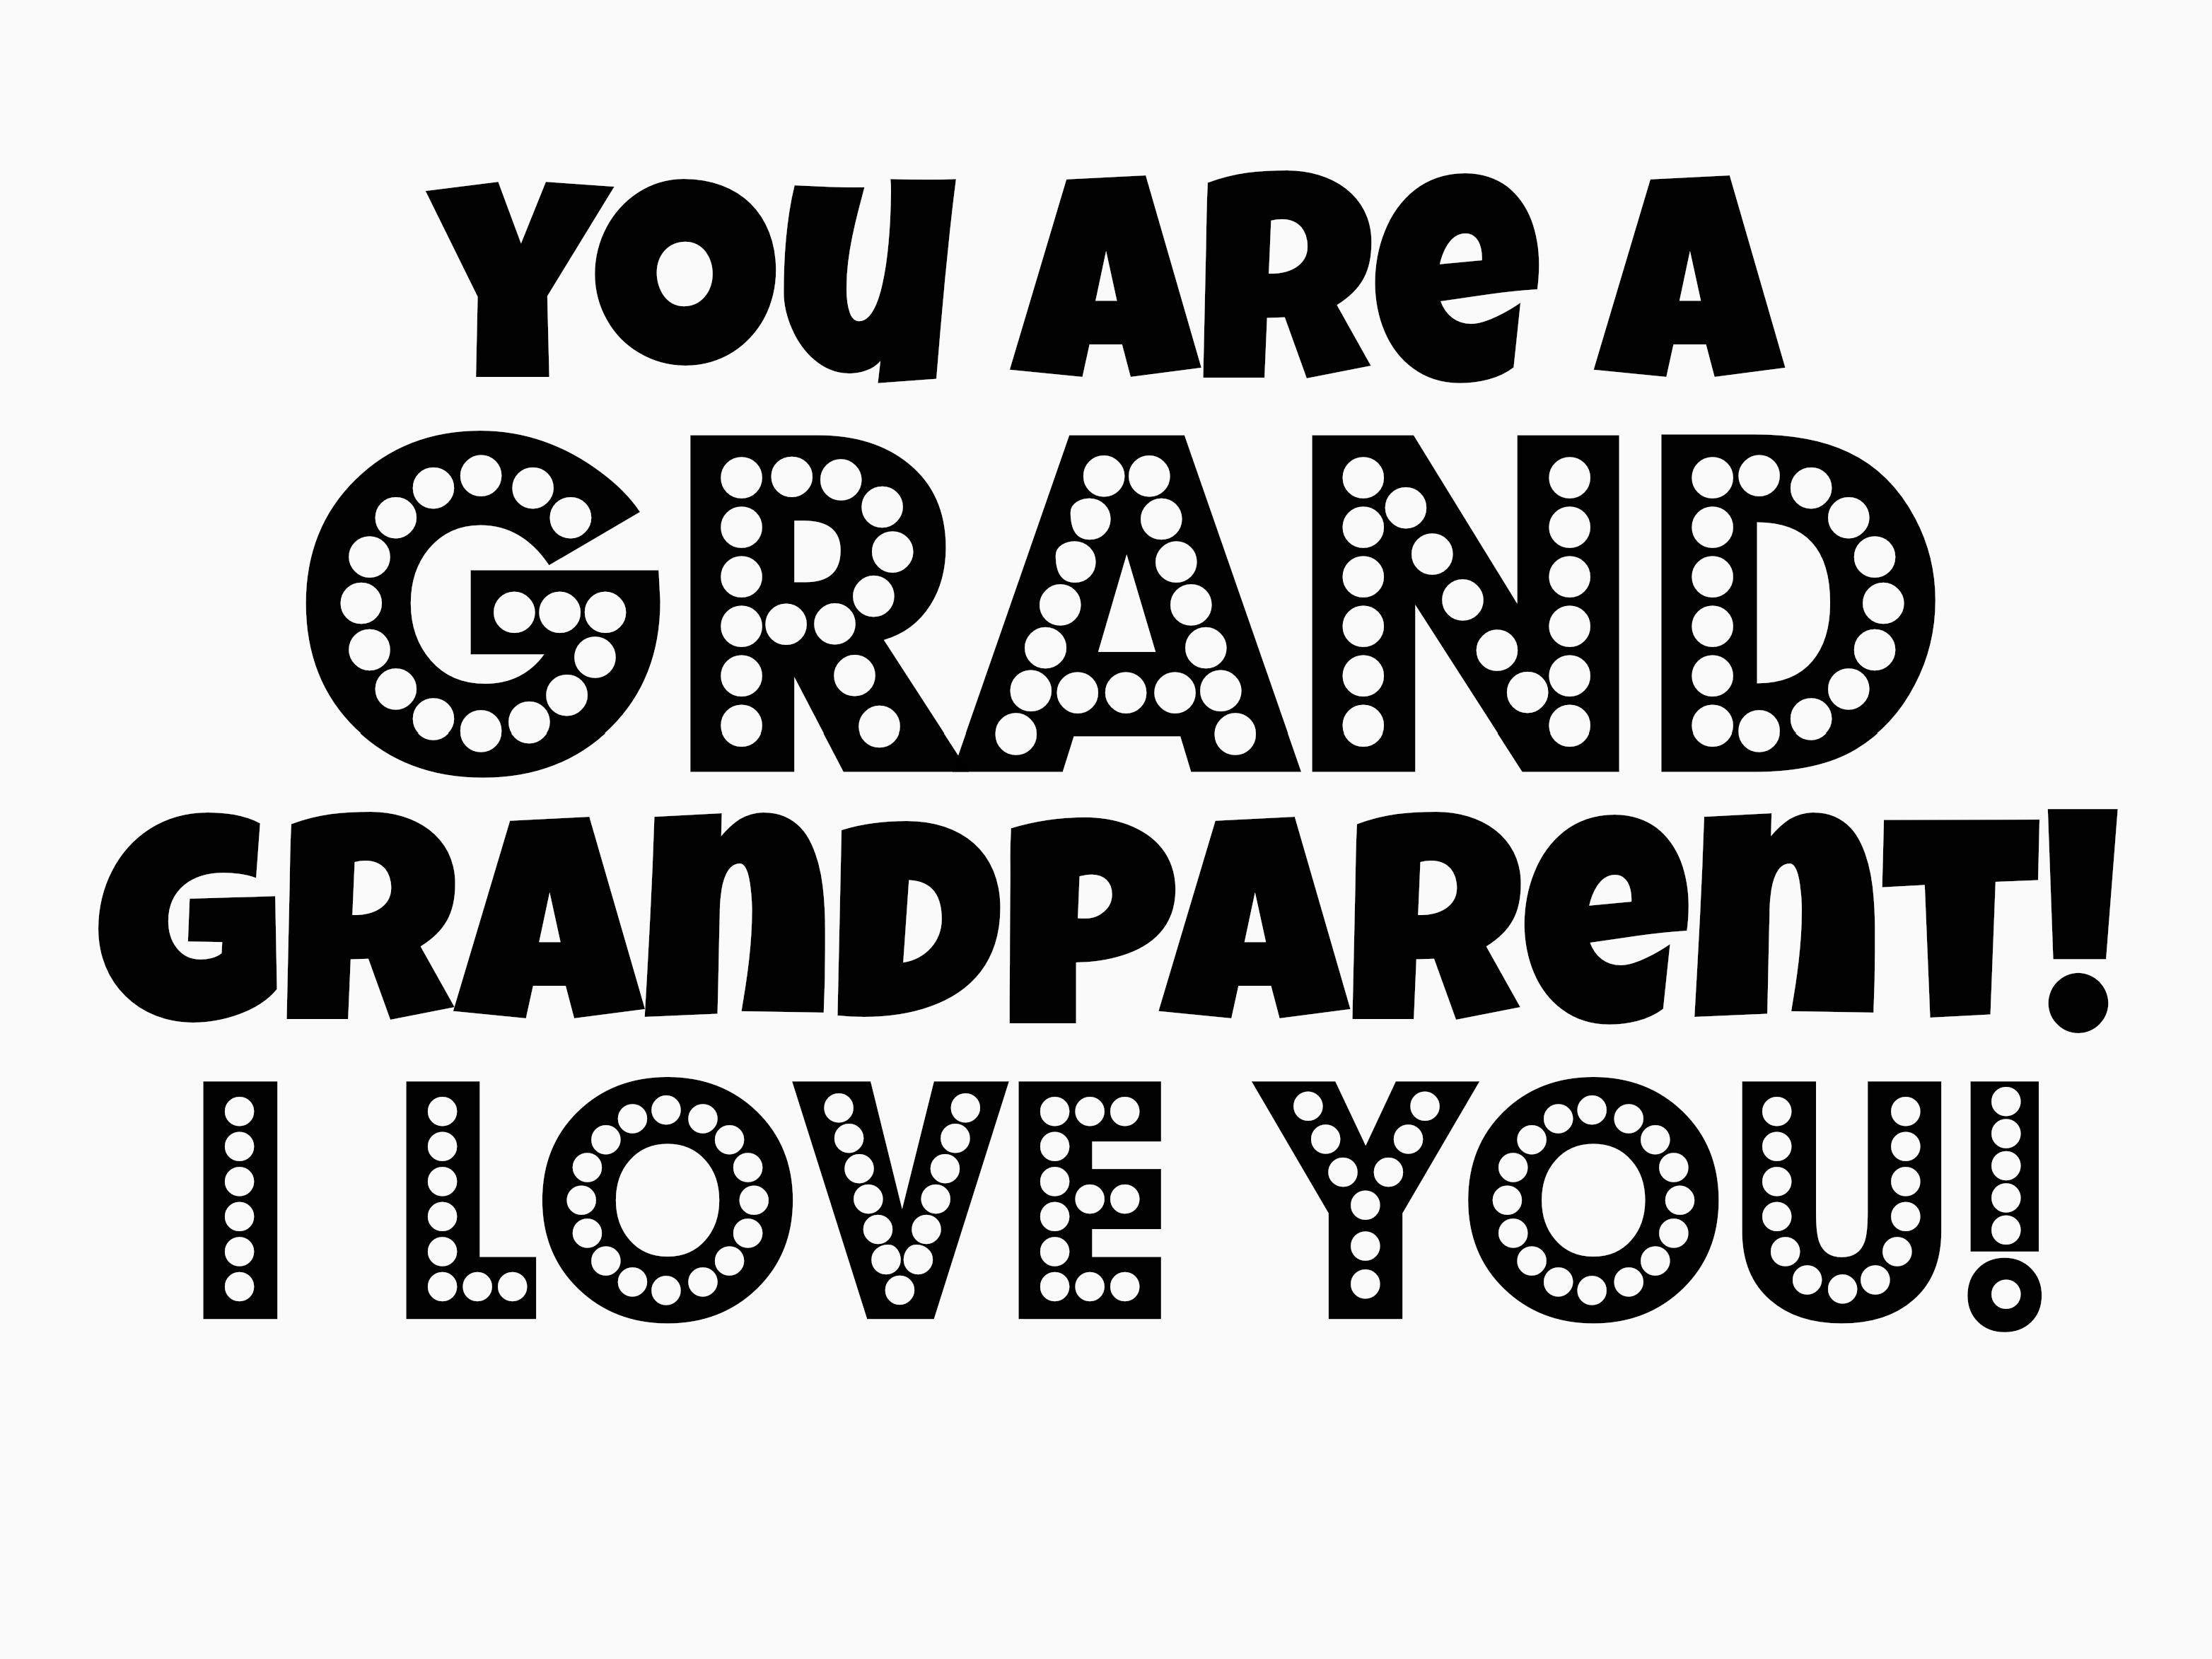 Get Ready For Grandparent's Day With a FREE Printable!